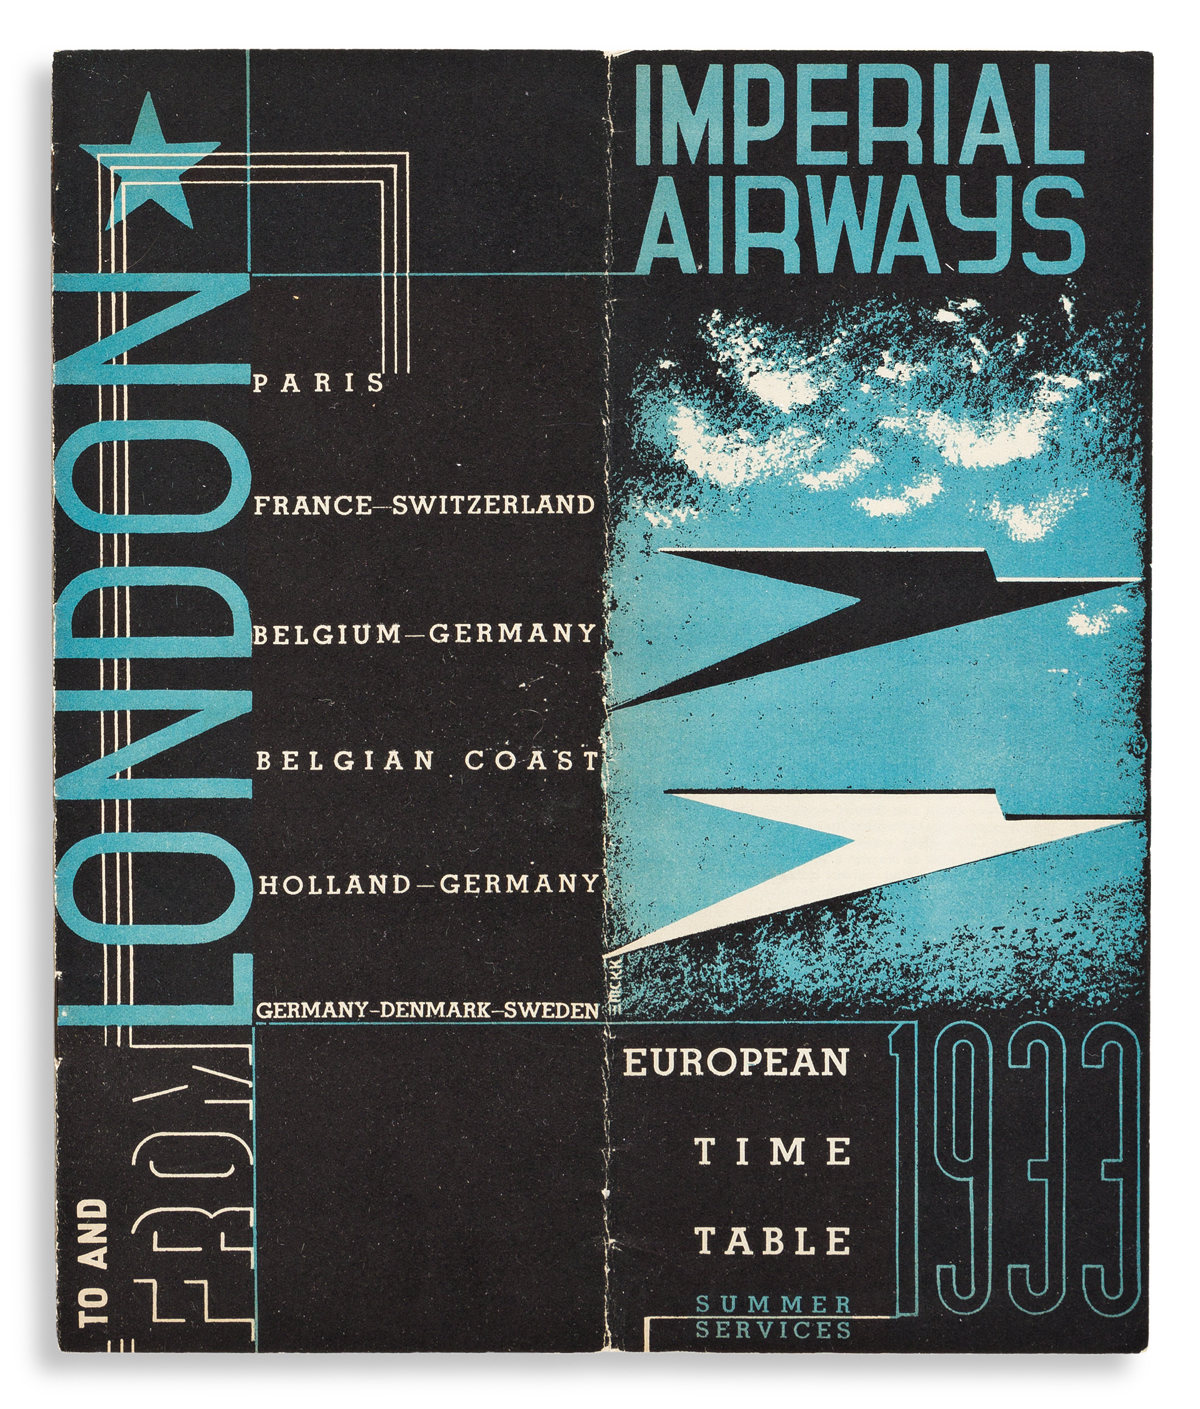 EDWARD MCKNIGHT KAUFFER (1890-1954).  IMPERIAL AIRWAYS. Group of 7 folded timetables. 1930s. Sizes vary.